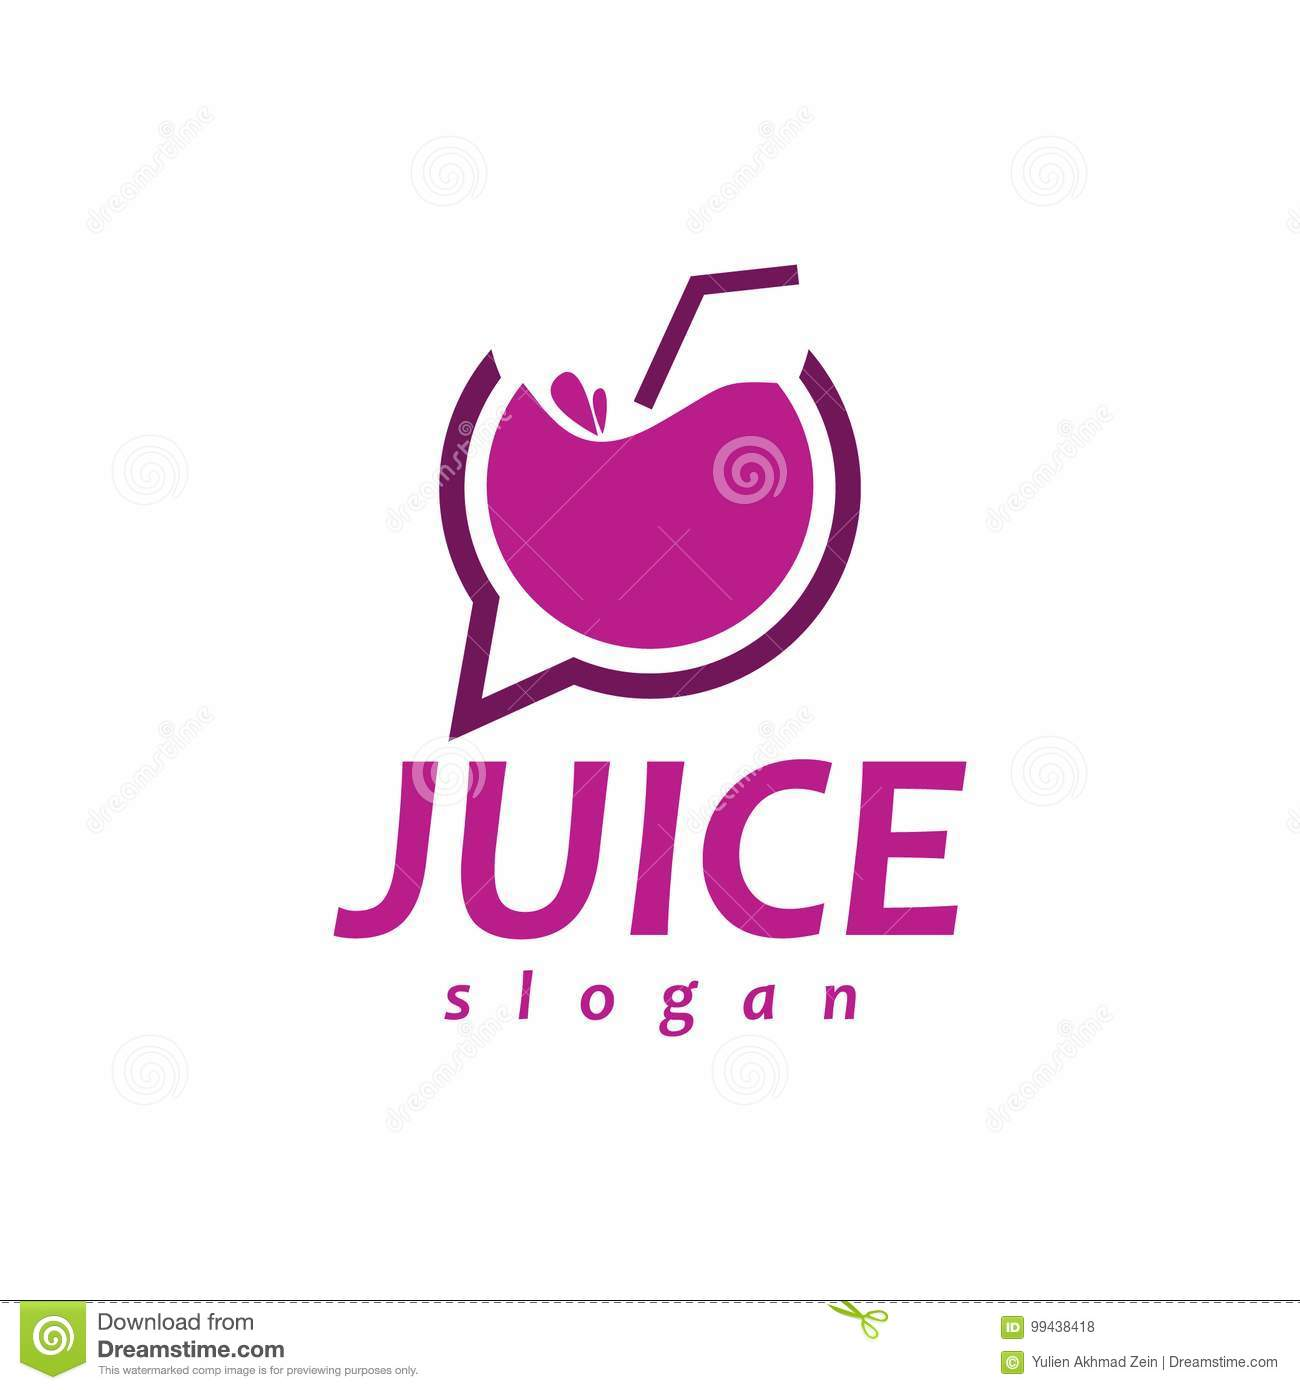 logo juice stock illustrations 38 217 logo juice stock illustrations vectors clipart dreamstime https www dreamstime com stock illustration chat juice logo chat juice logo design vector illustration juice illustration image99438418